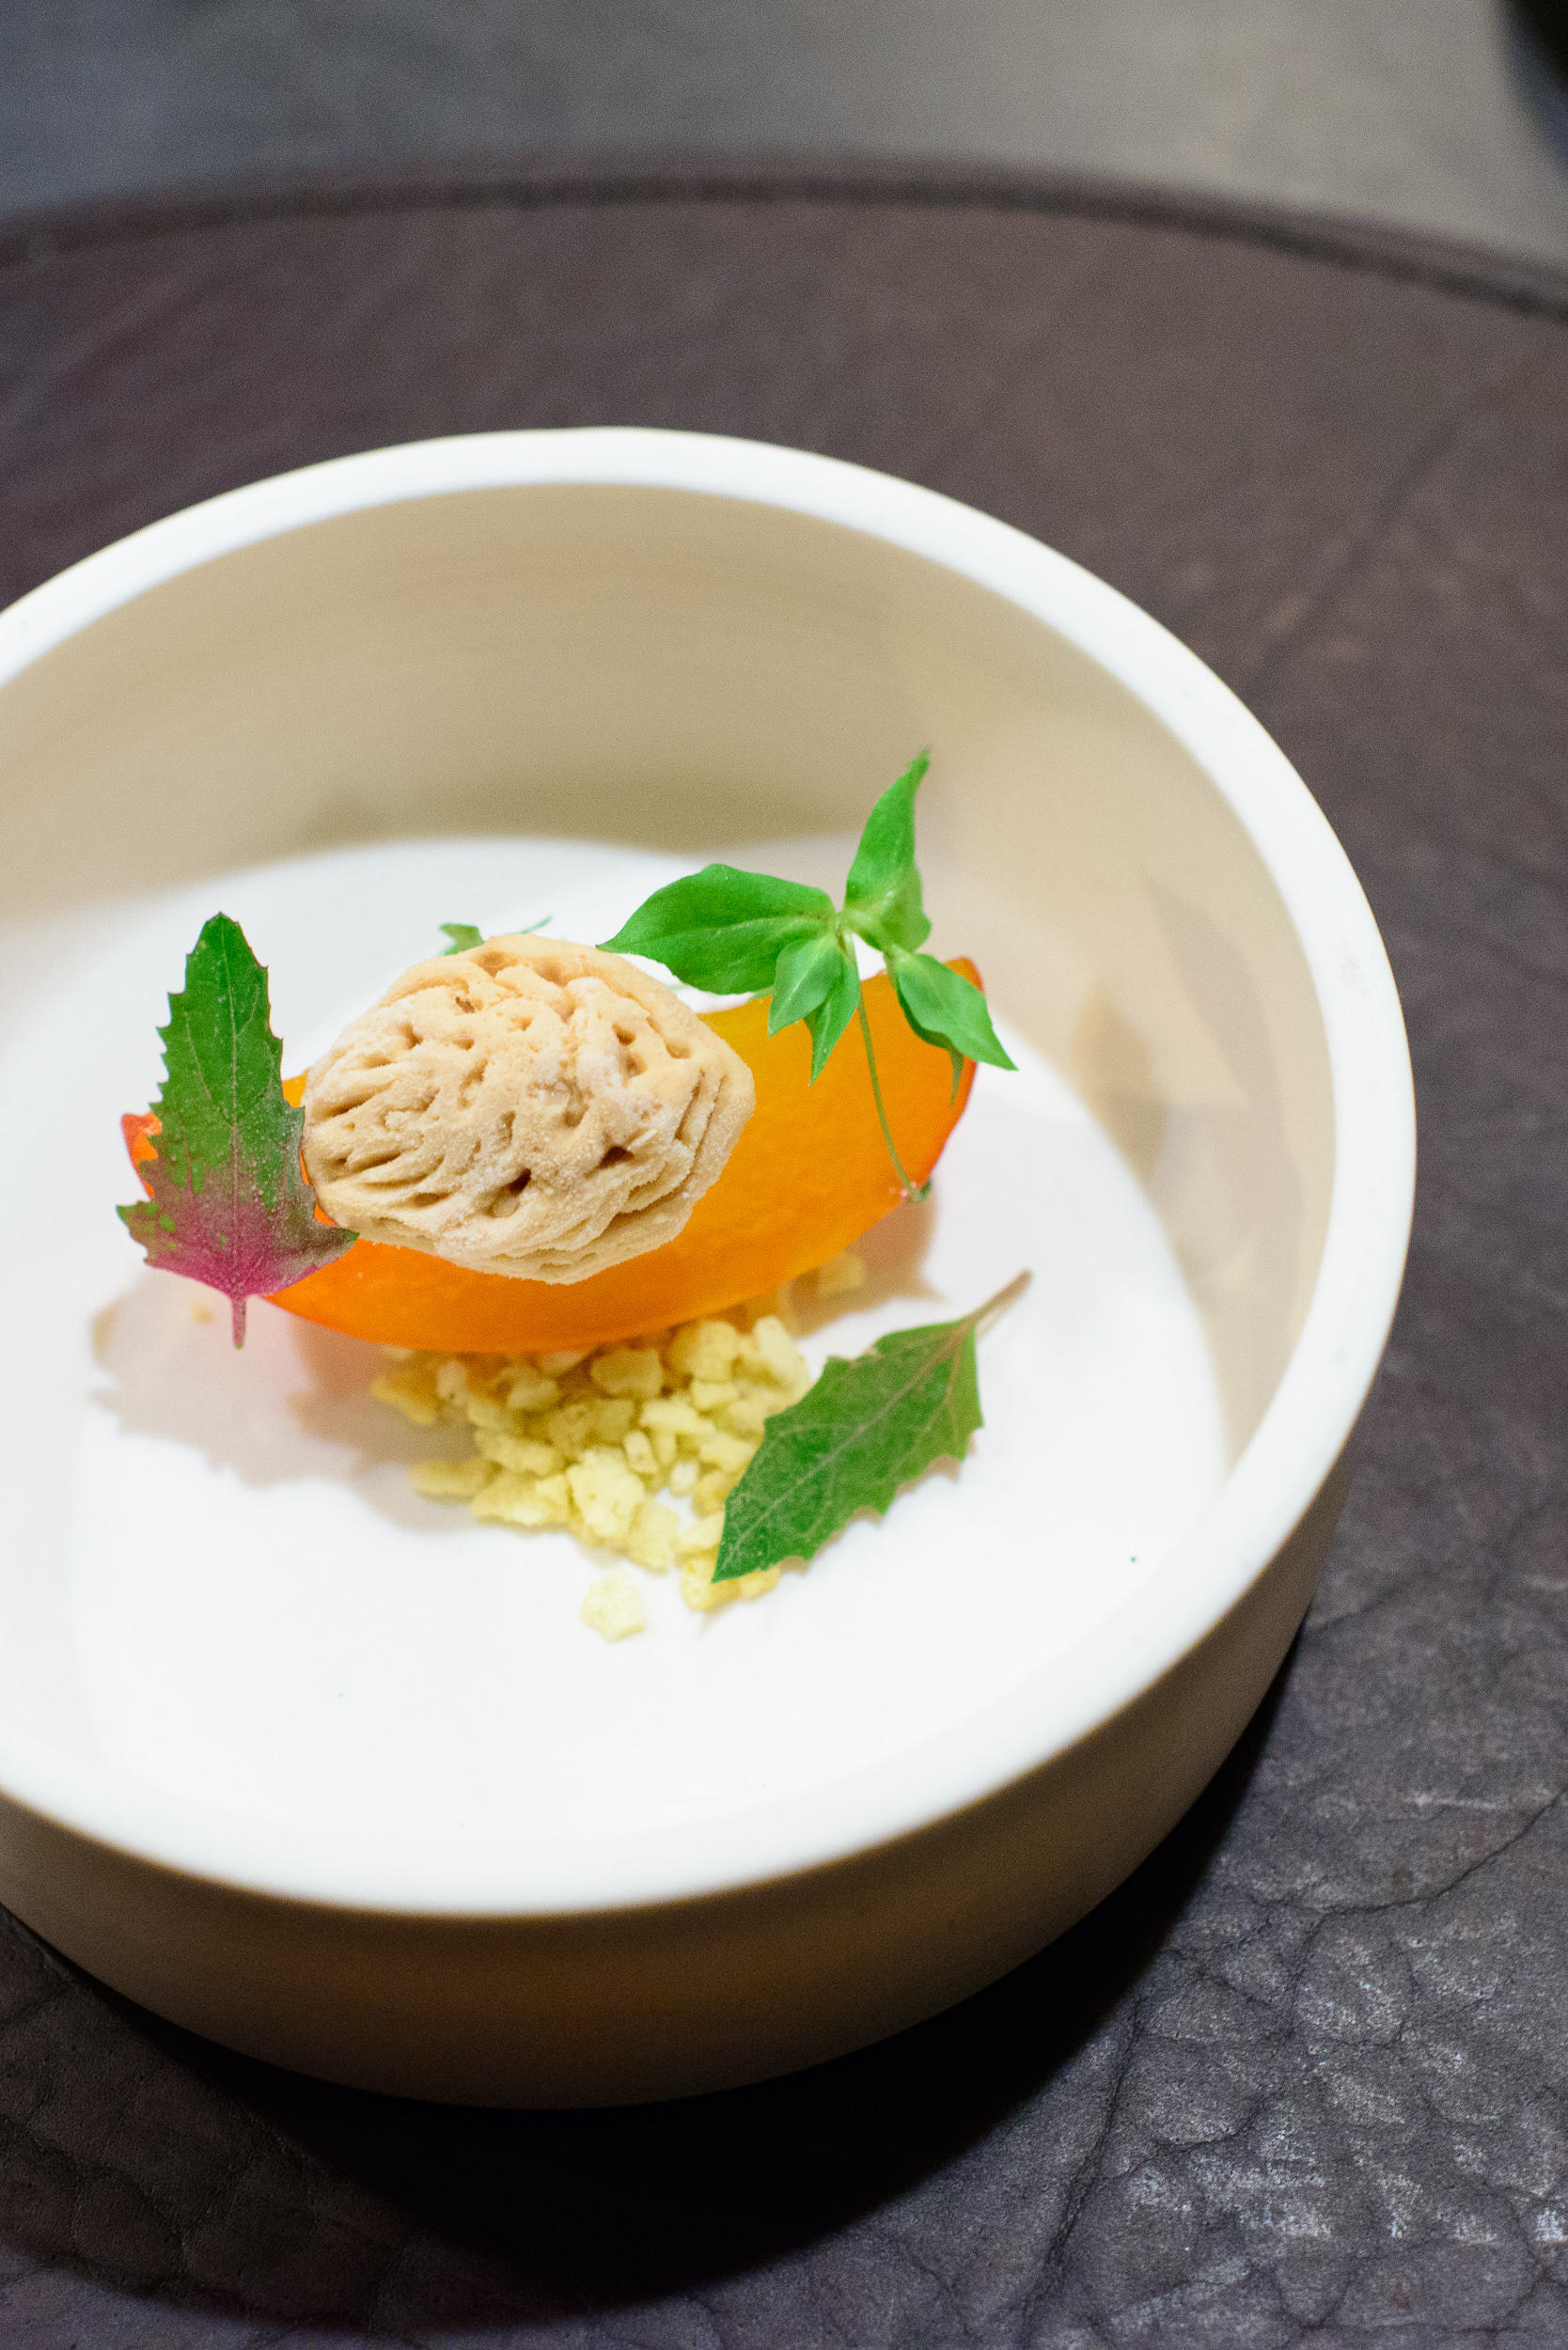 18th Course: Peach, sunflower toffee